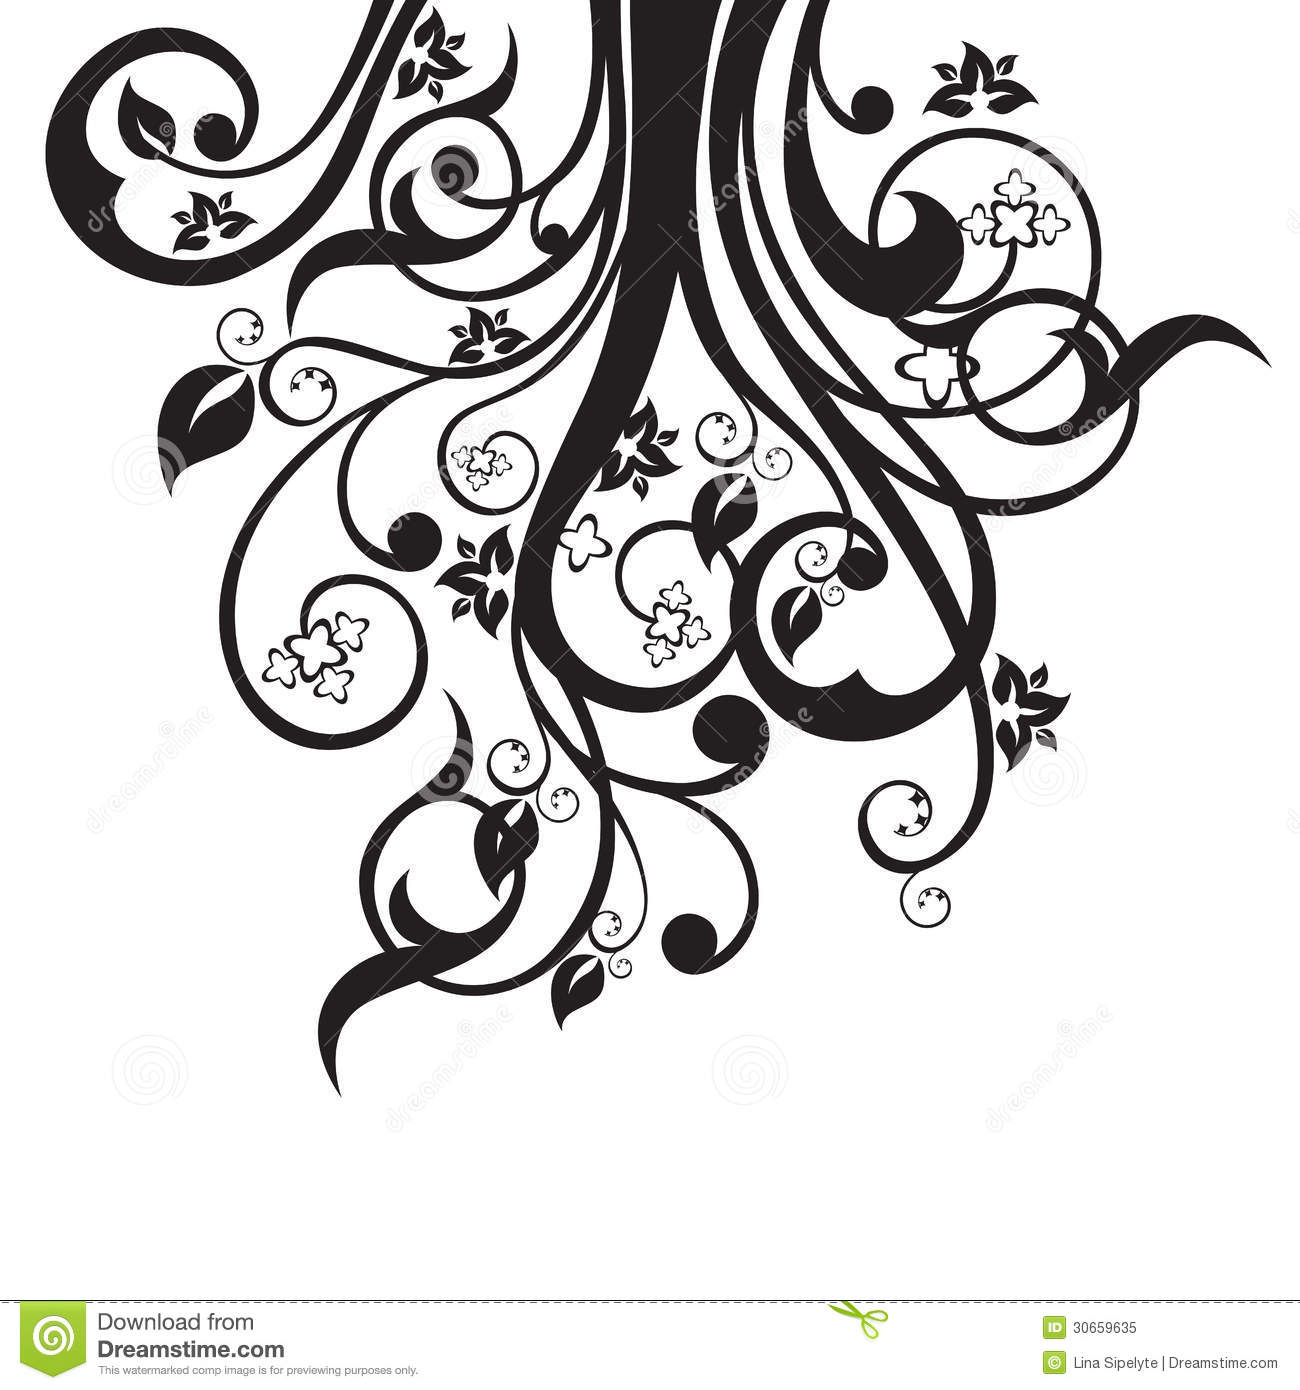 Flowers, Leaves And Swirls Silhouette In Black Royalty Free Stock ...